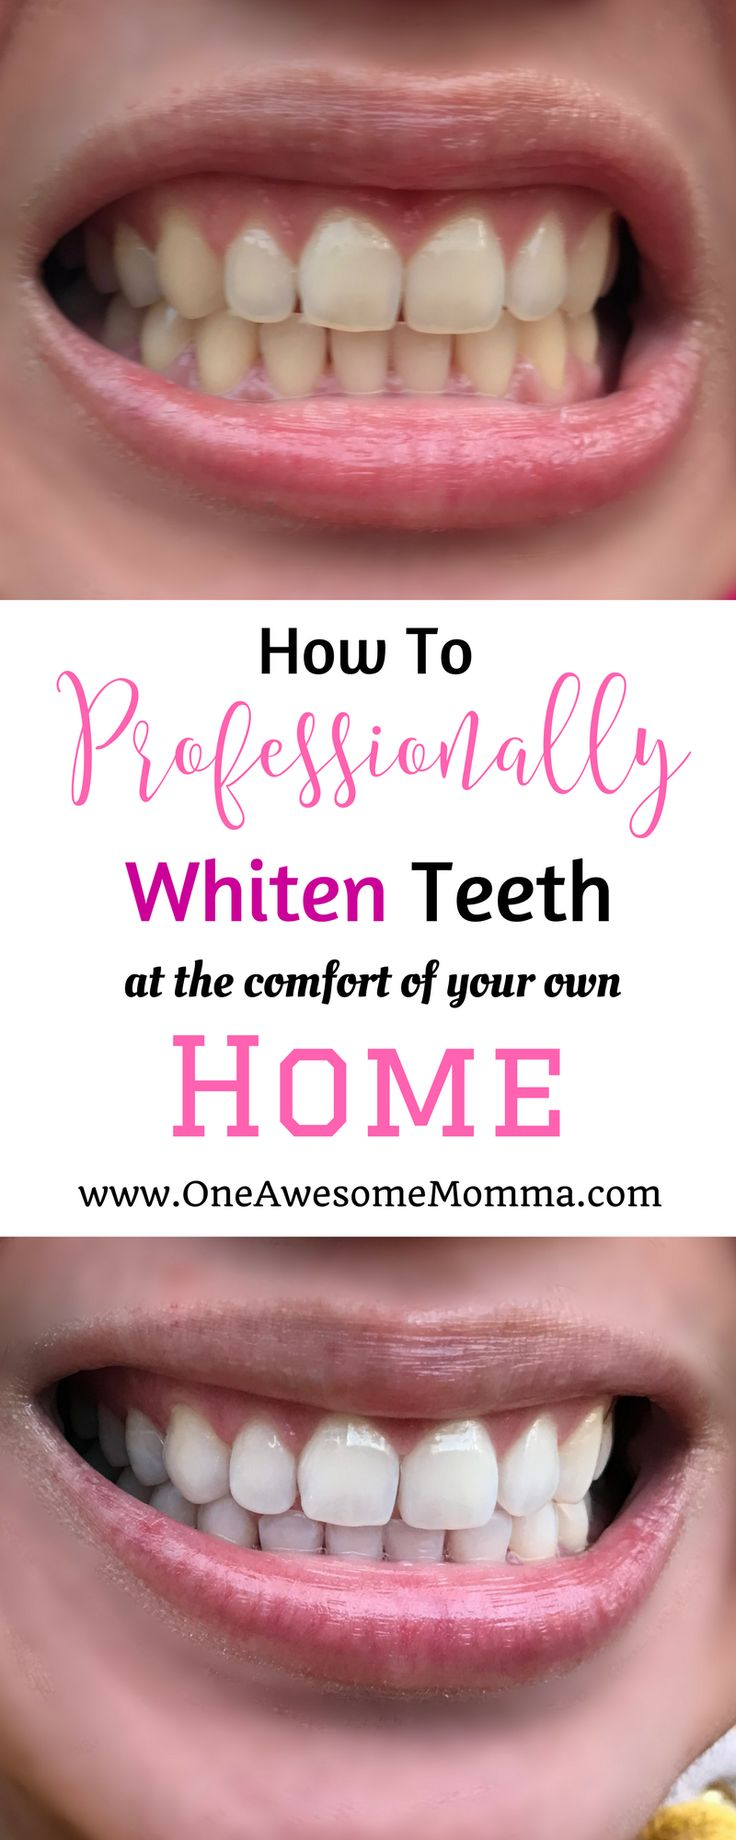 Did you ever wish your teeth were whiter? Are you tired of using different teeth whitening products that don't deliver. Check out this in-home whitening kit that you can do at the comfort of your home without breaking the bank. | teeth whitening | teeth w http://getfreecharcoaltoothpaste.tumblr.com